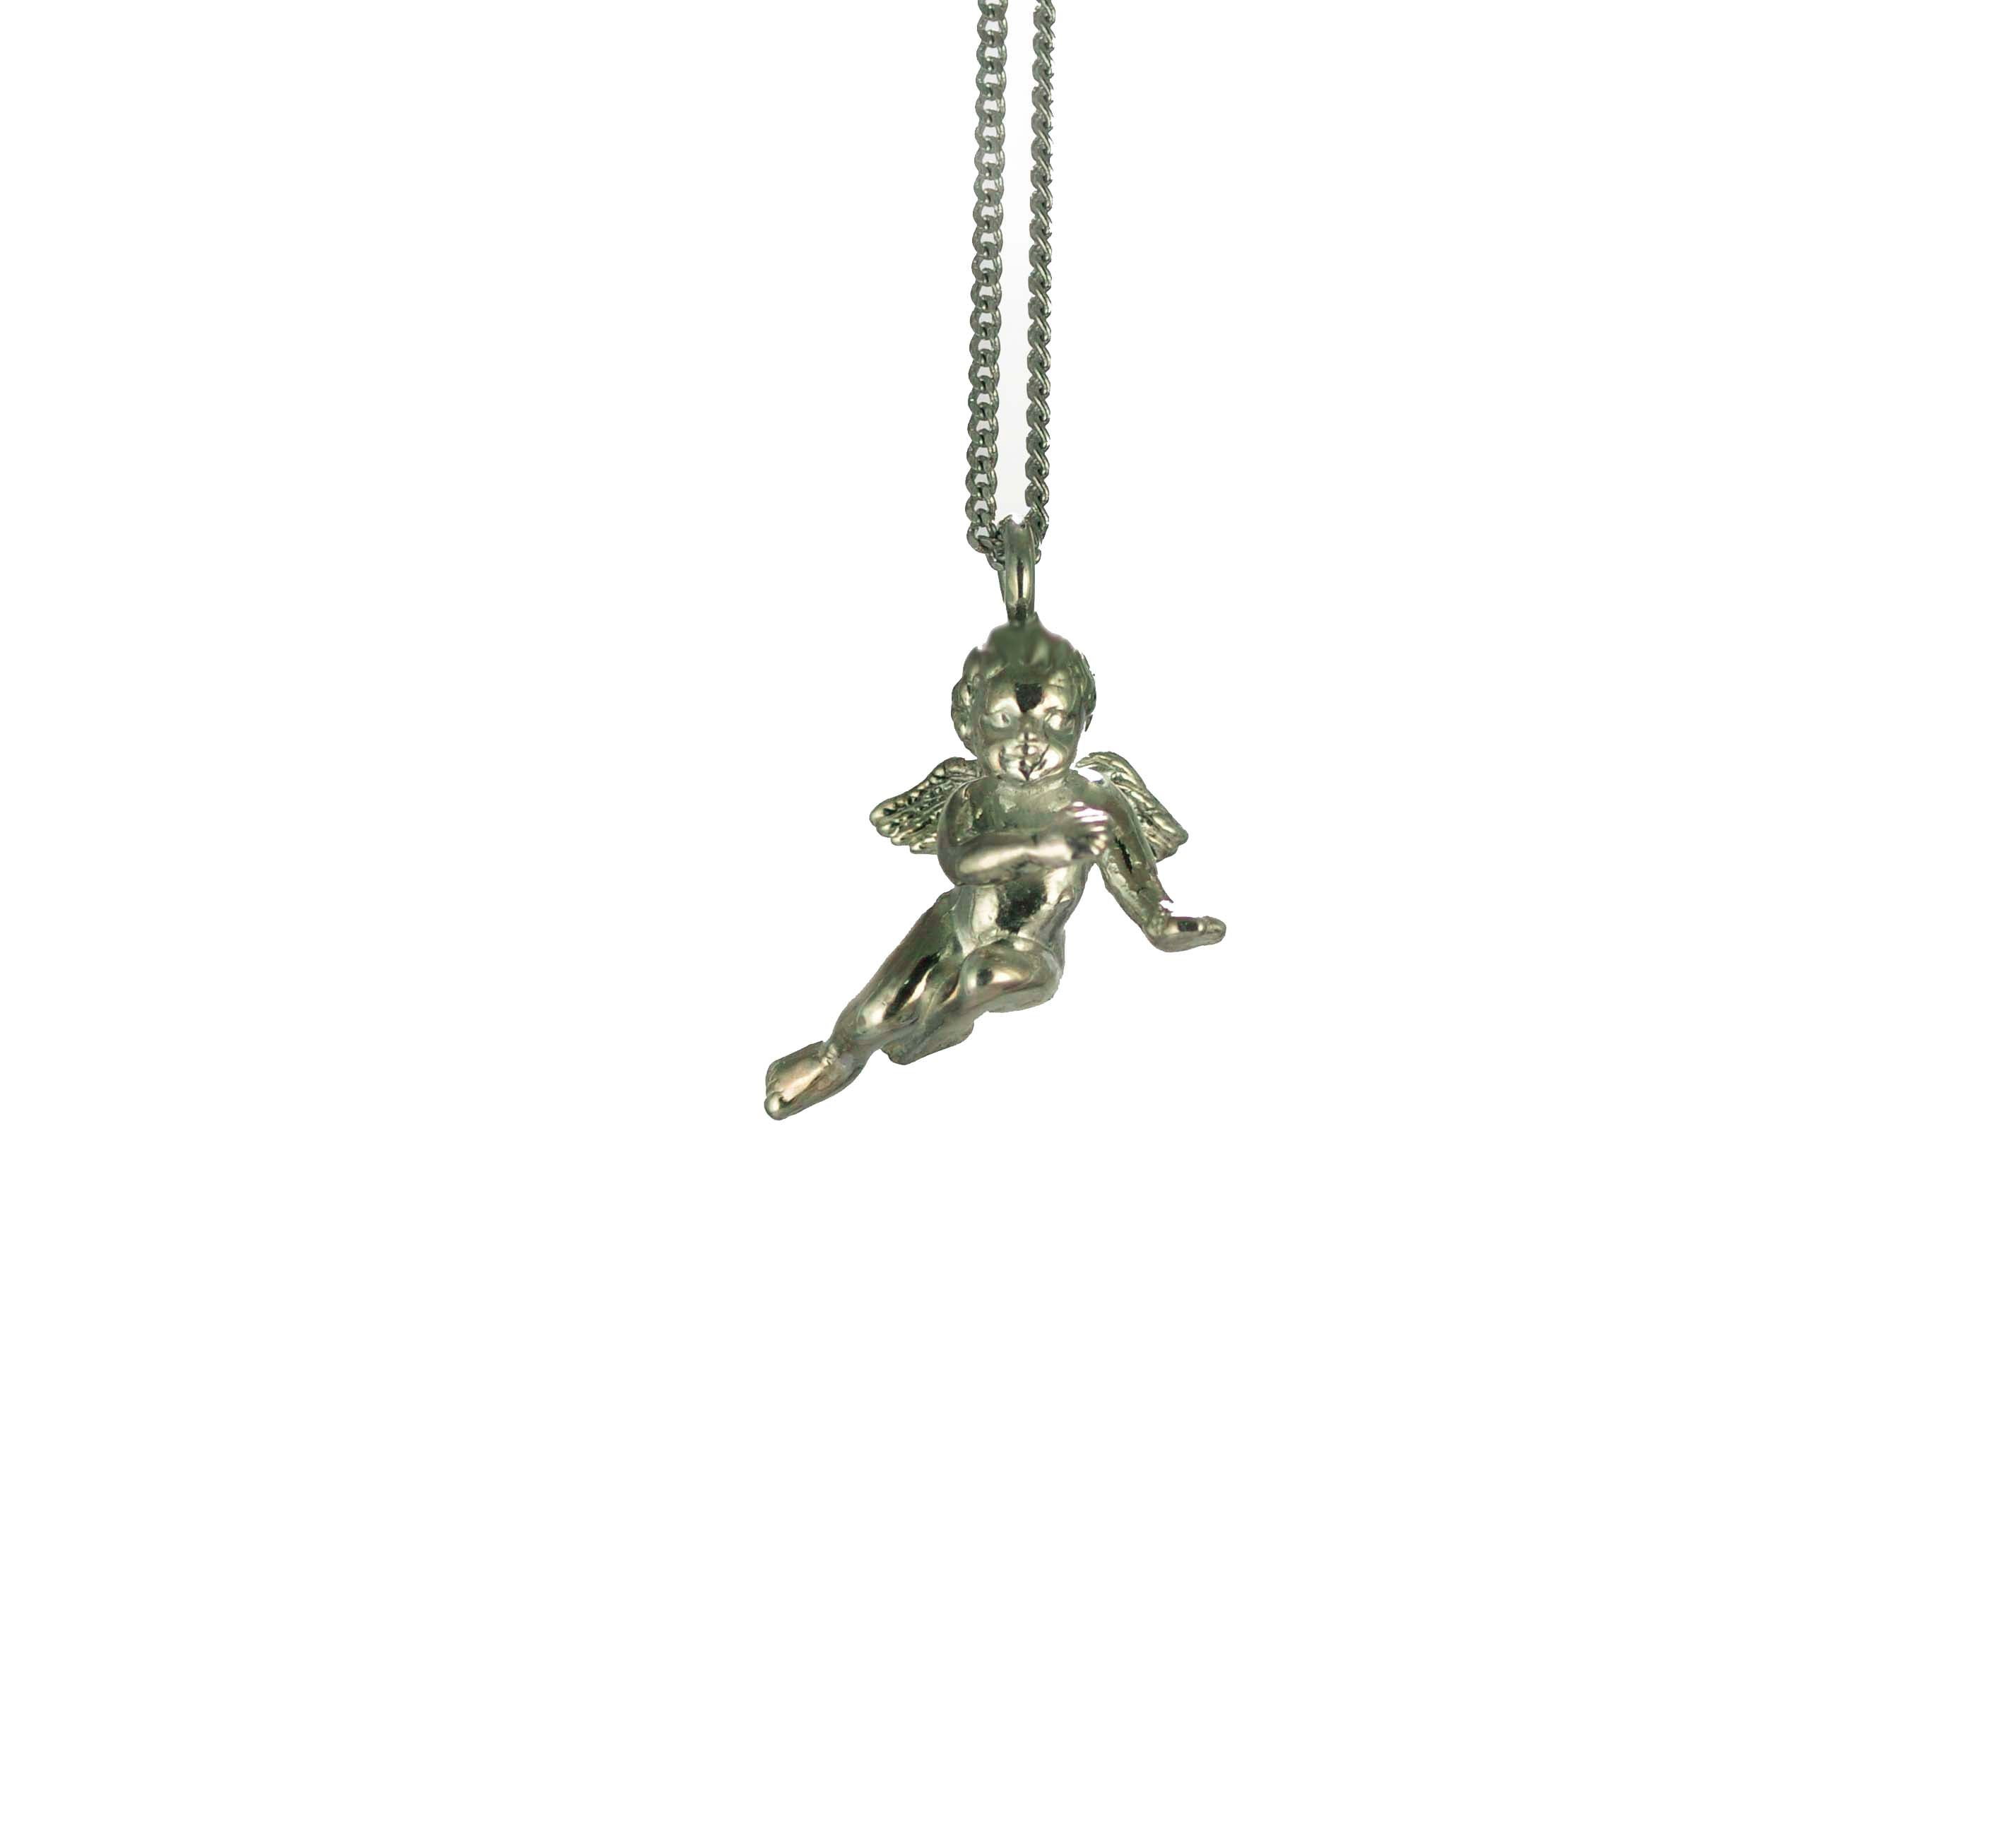 Cherub Necklace - Terry Schiefer